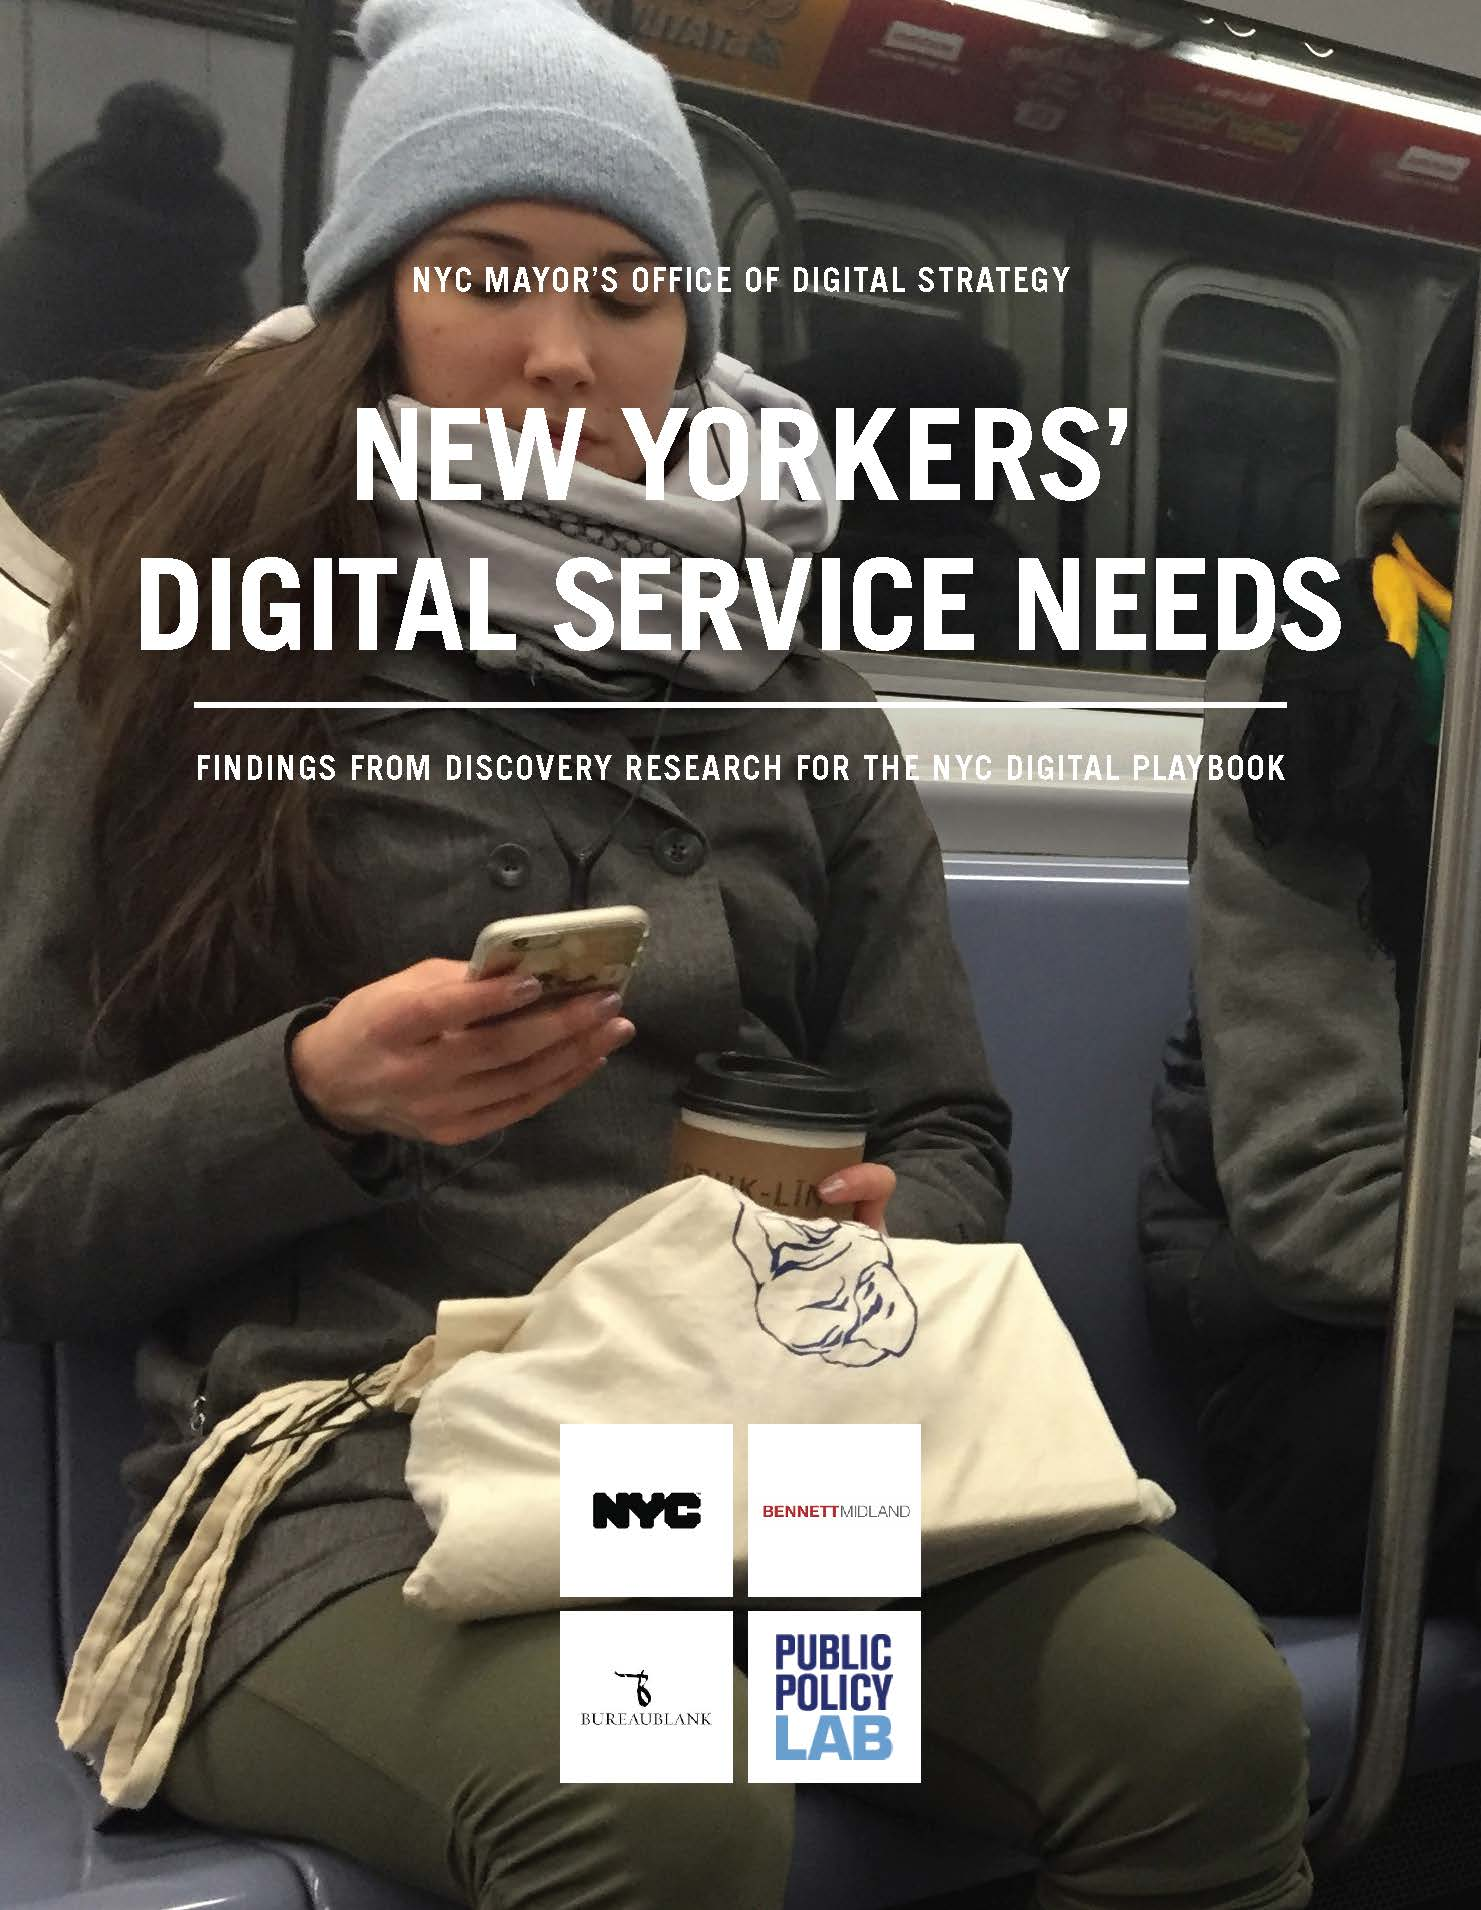 New Yorkers' Digital Service Needs